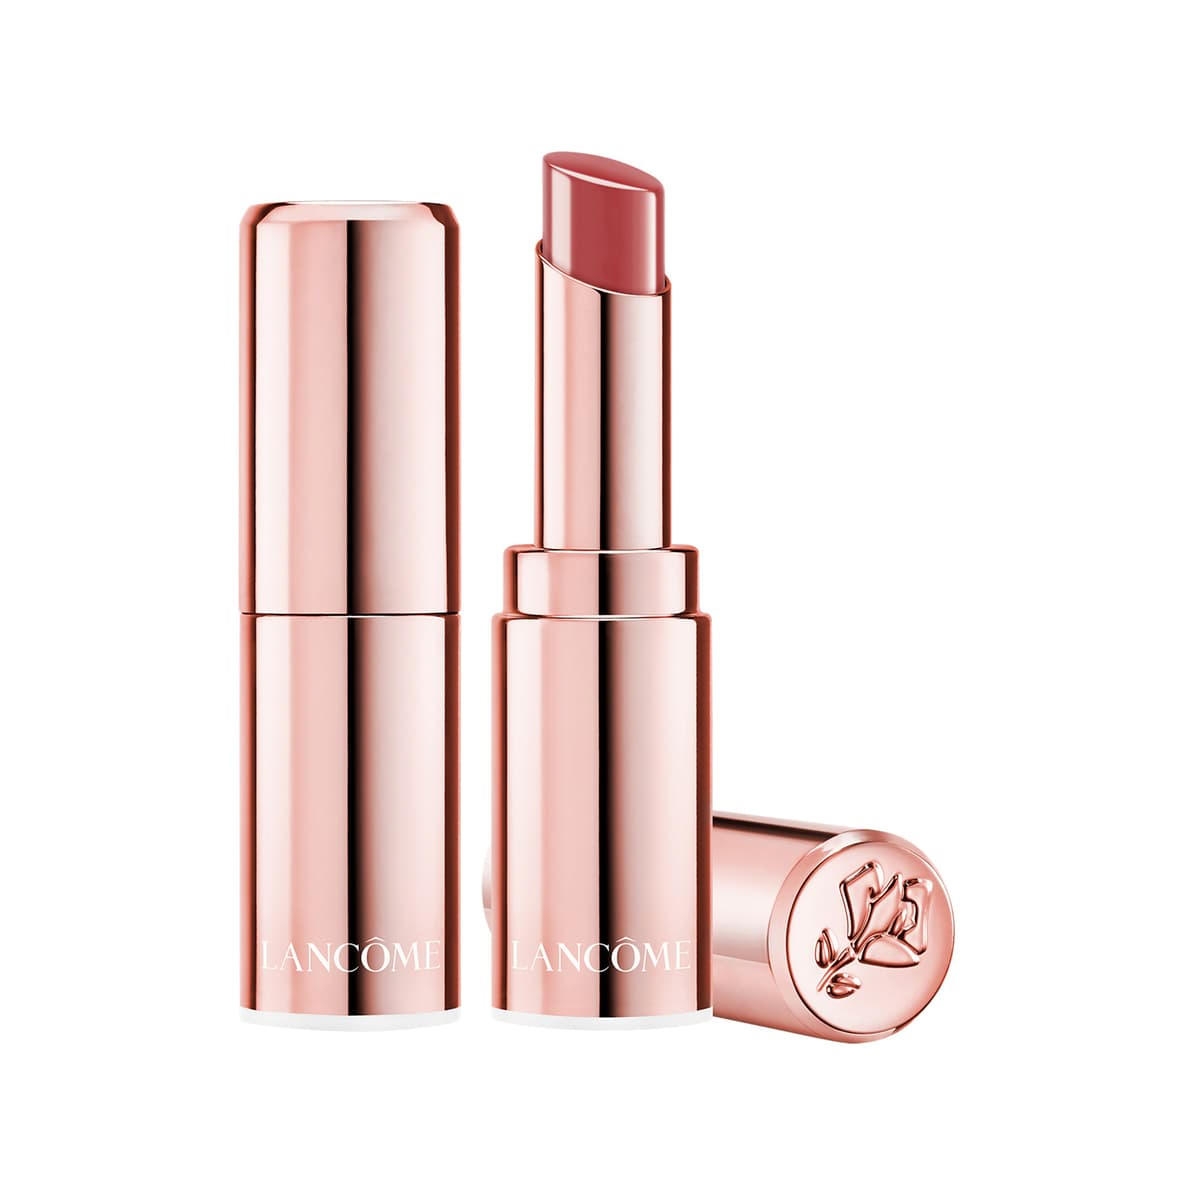 Lancome L'Absolu Mademoiselle Shine Lipstick Independent Woman 0605